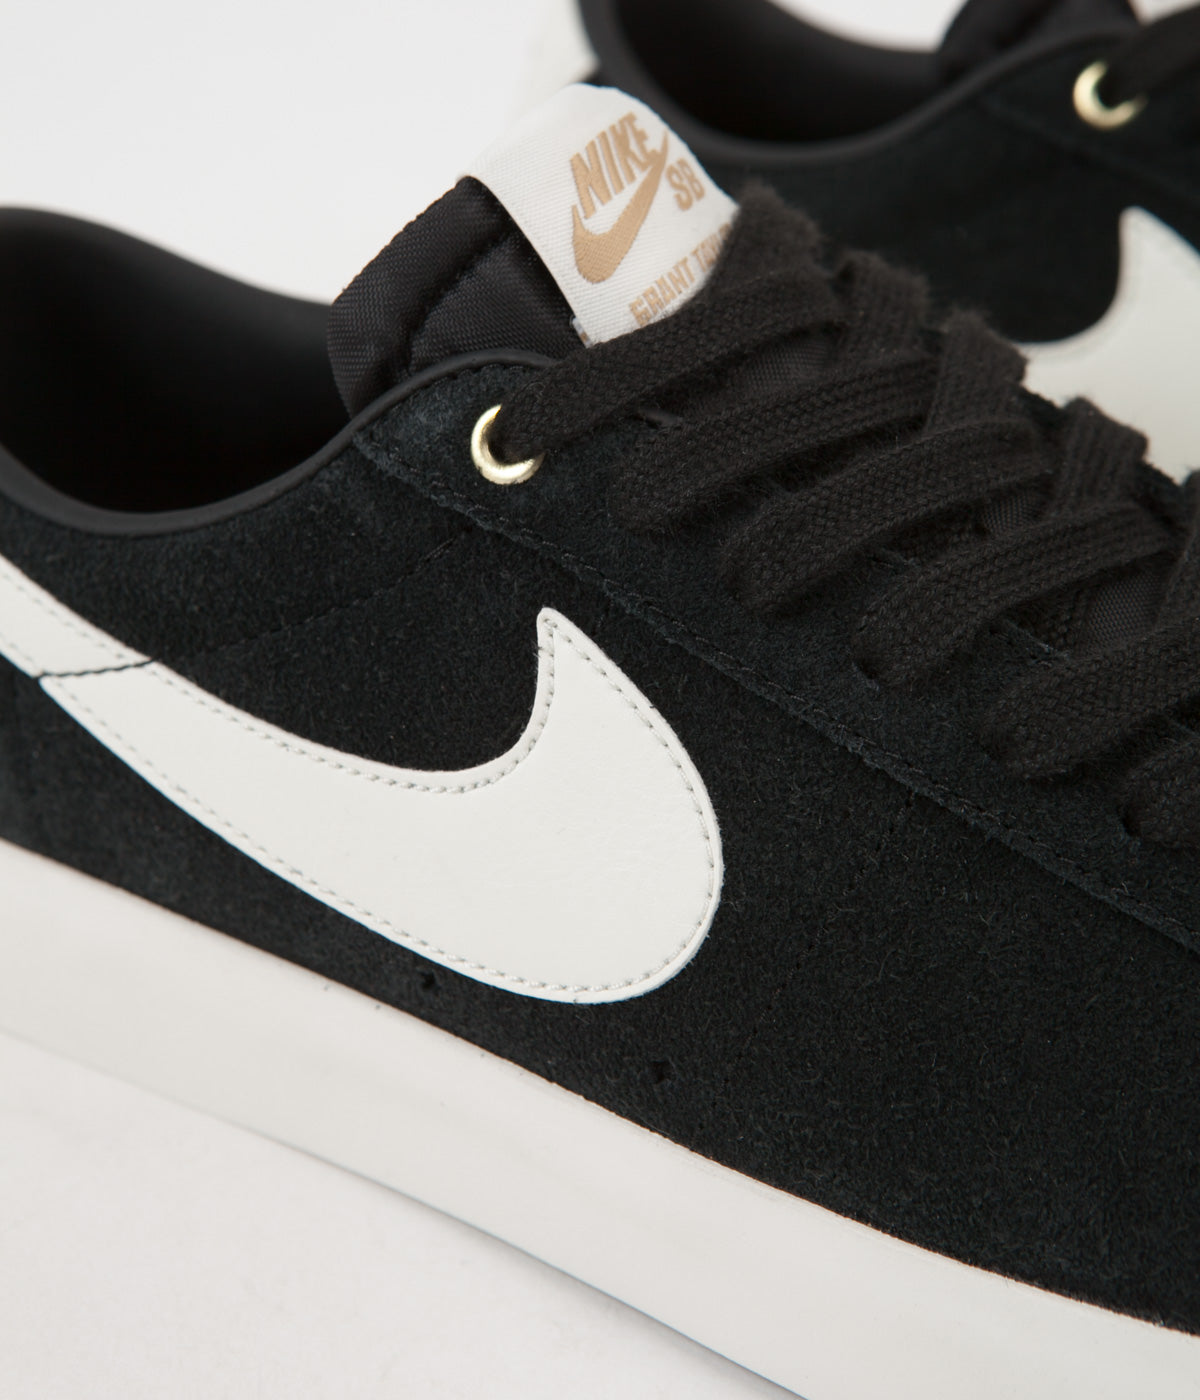 new product 494cc 8f9e3 Nike SB Blazer Low GT Shoes - Black / Sail | Flatspot